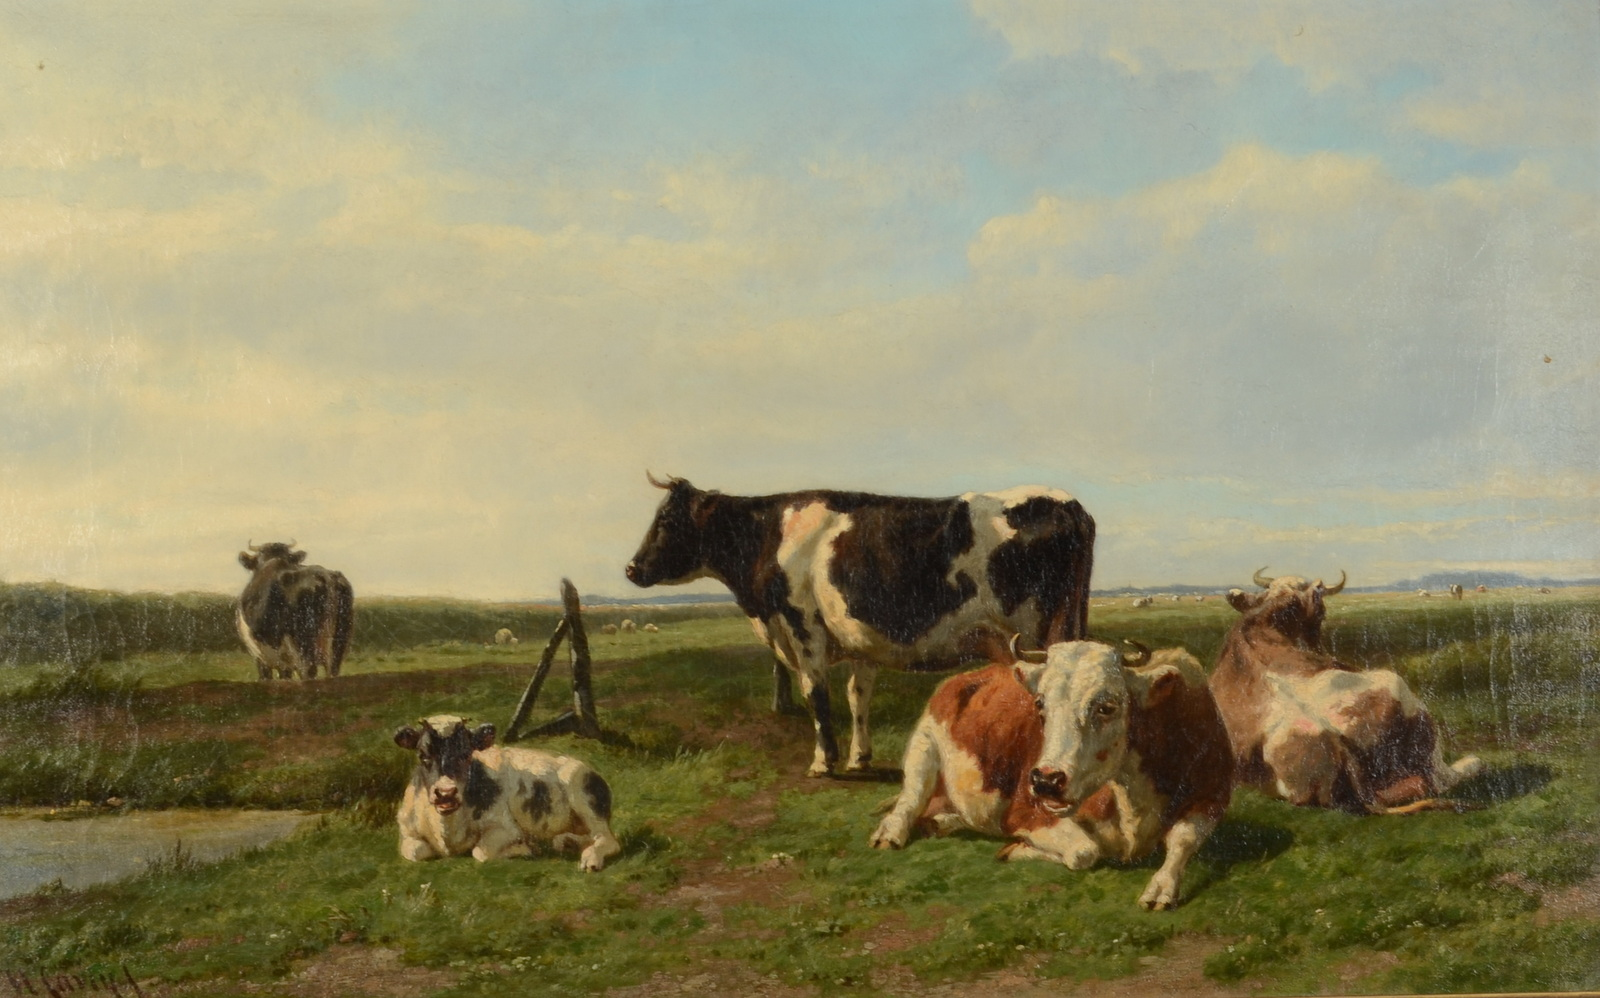 Lot 1 - HENDRICK SAVRY Cattle and sheep in a sunlit field Oil on canvas Signed 50 x 80cm